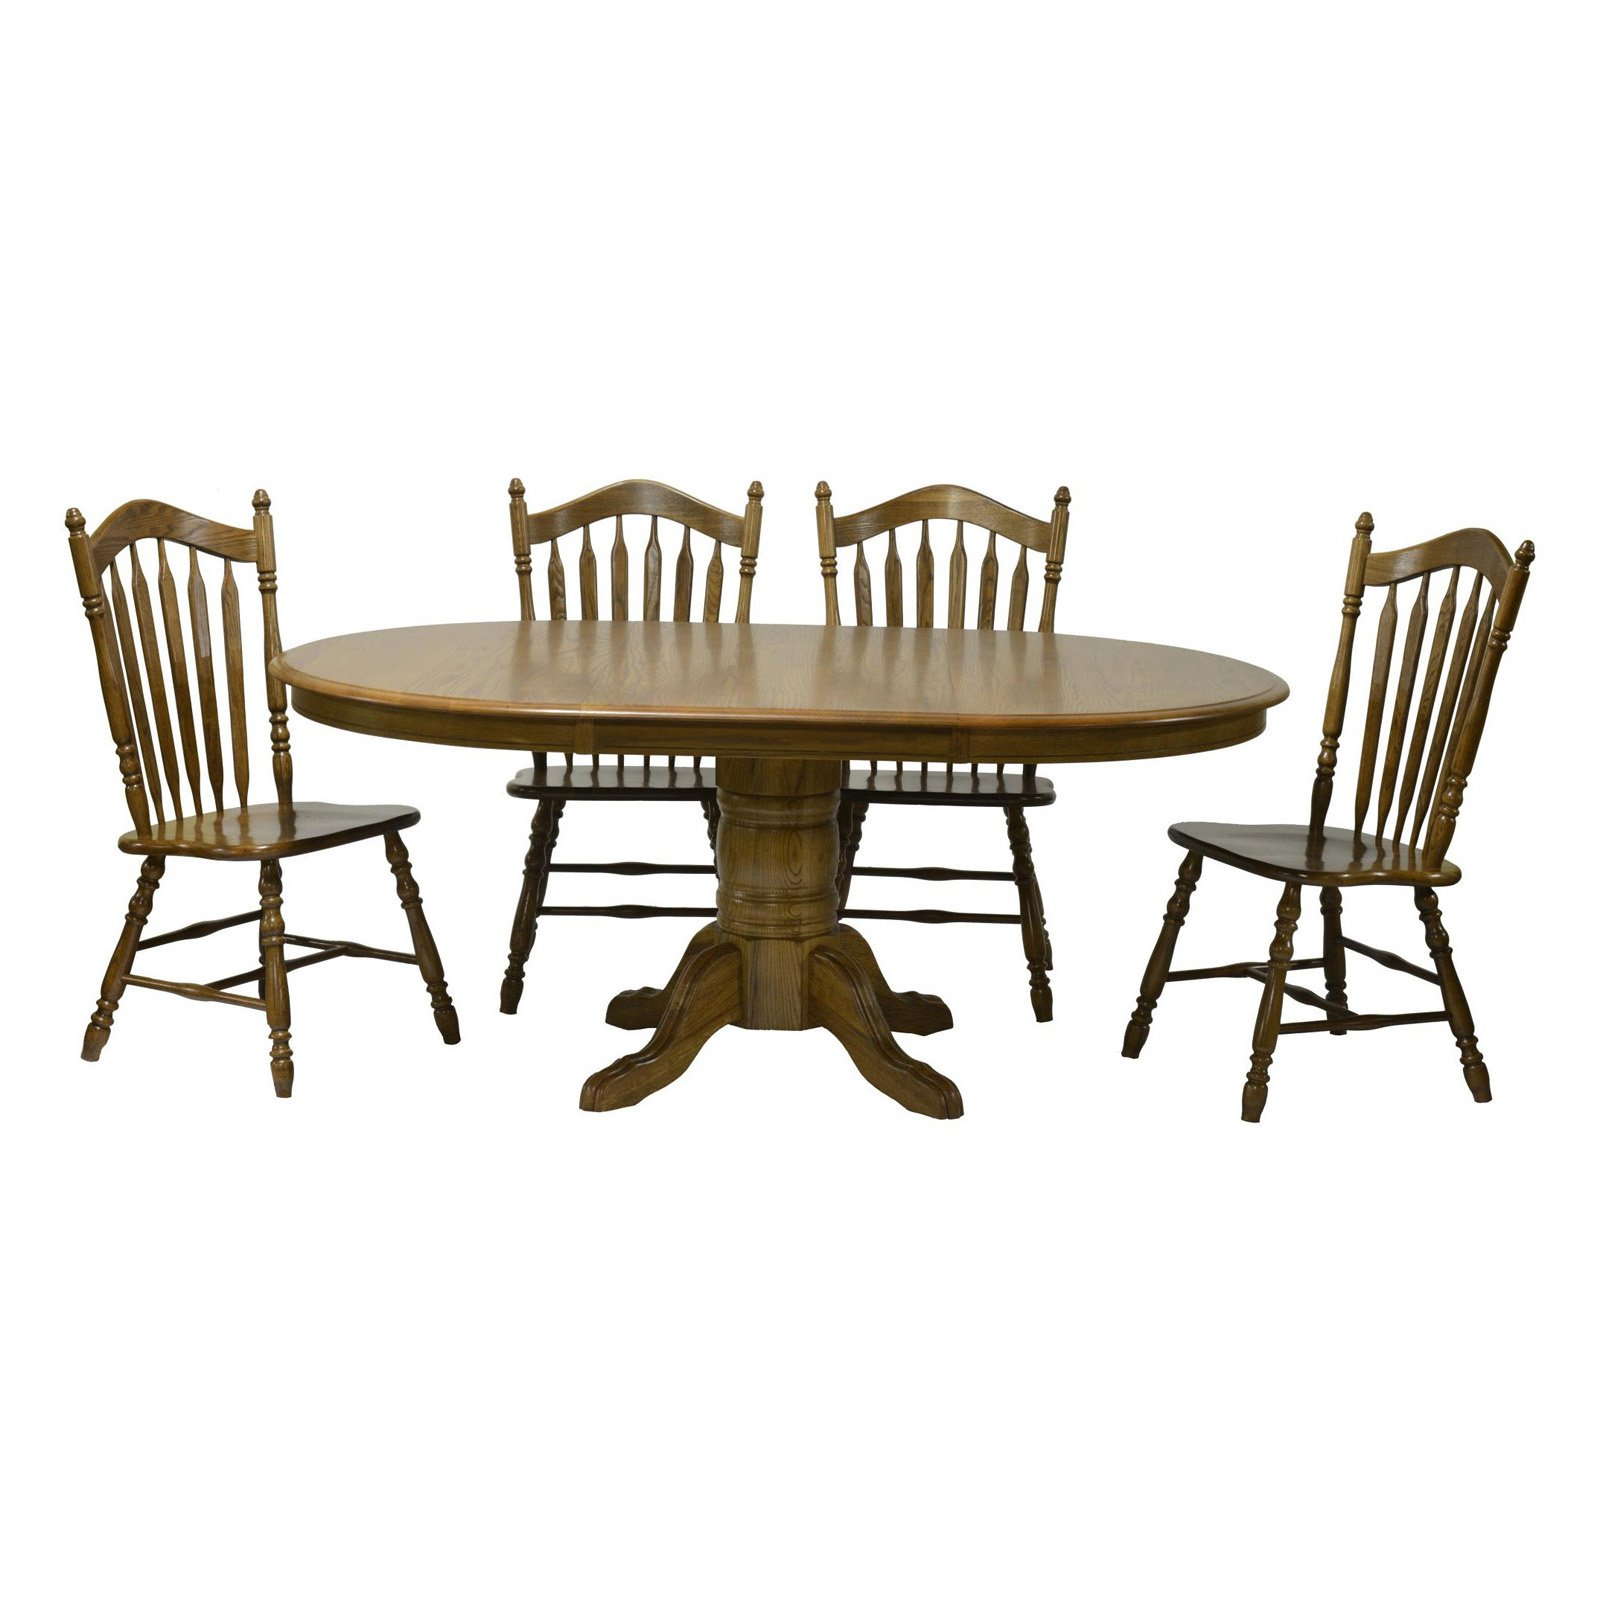 Chelsea Home Sourwood Pedestal Dining Table